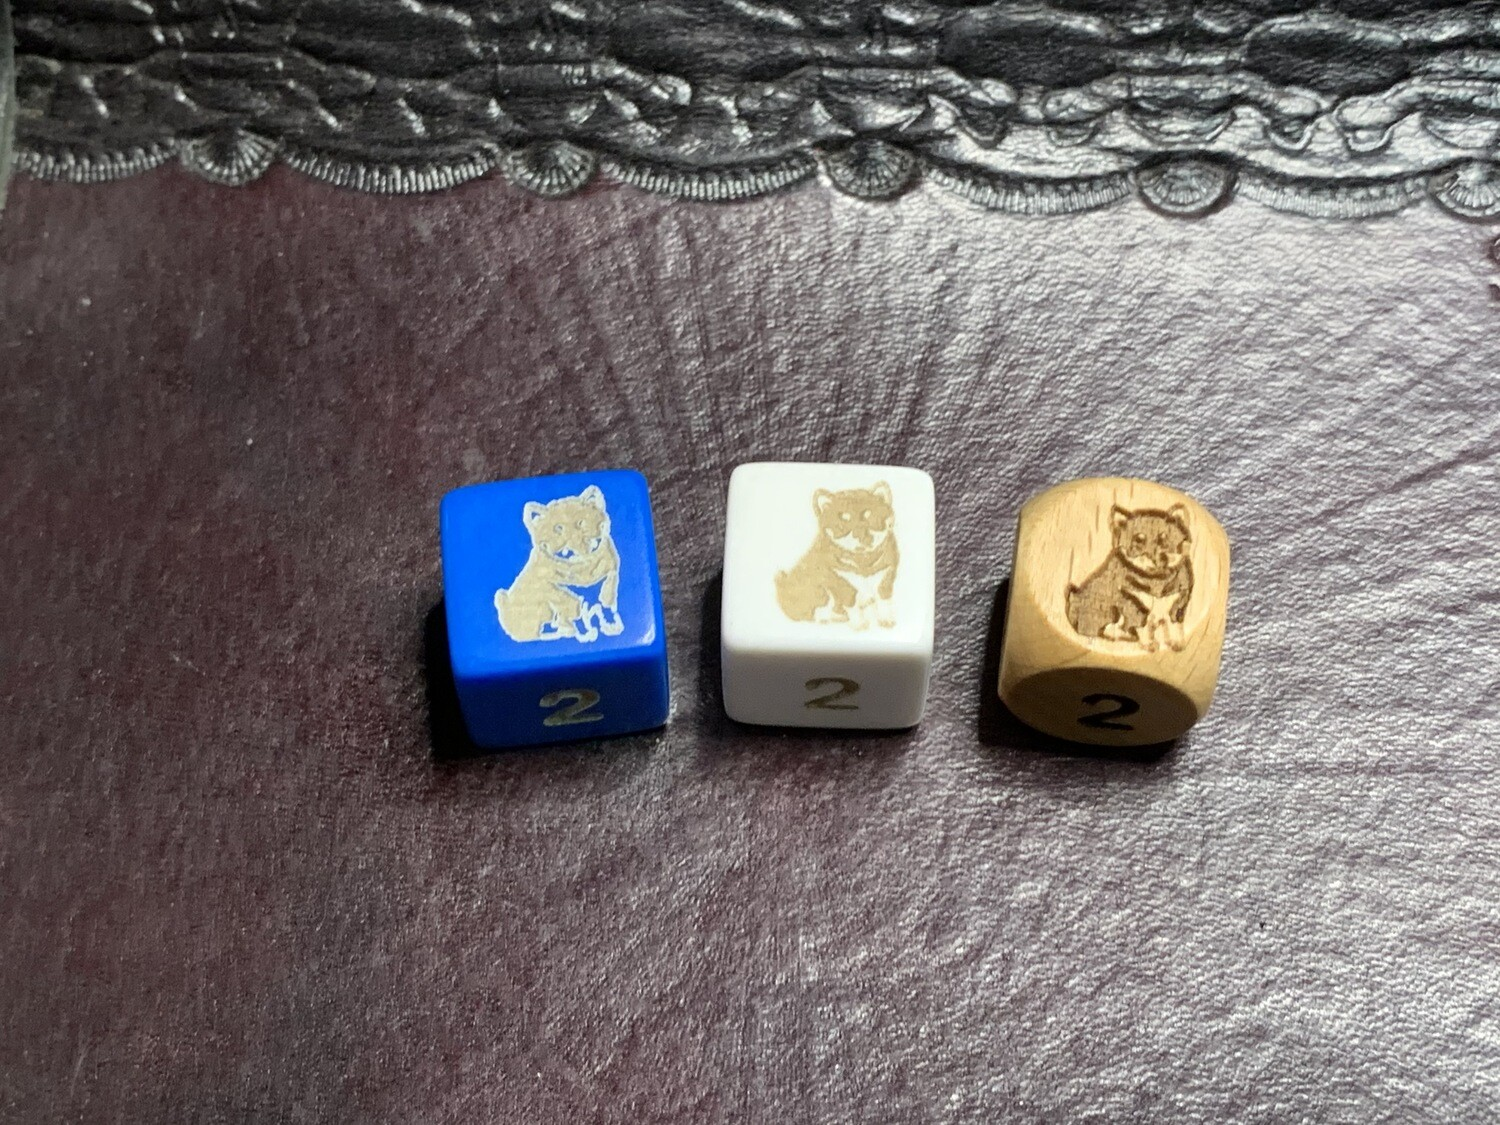 Shiba Inu dog 16mm Custom D6 Six-Sided Engraved Die RPG Tabletop Gaming Games CCG Board Roleplay LARP Cosplay Dice Tokens Markers Decision